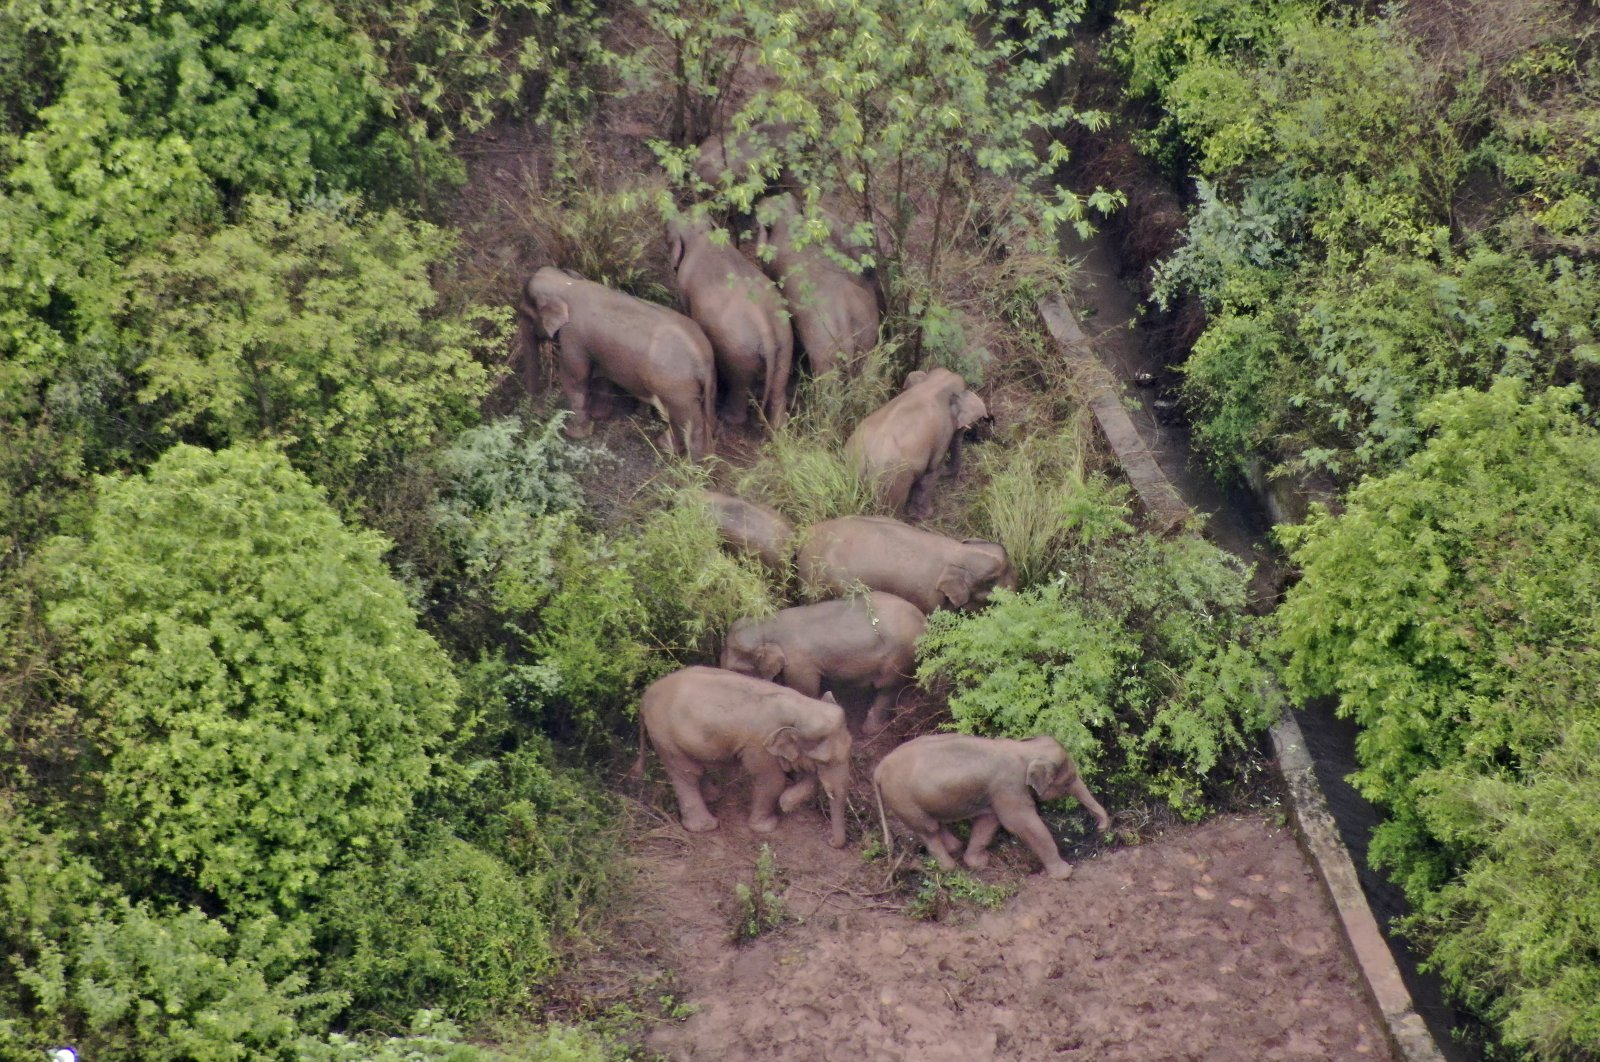 A migrating herd of elephants gathers near the Shijie Township in Yimen County, Yuxi city of southwestern China's Yunnan Province, June 10, 2021. (Yunnan Forest Fire Brigade via AP)